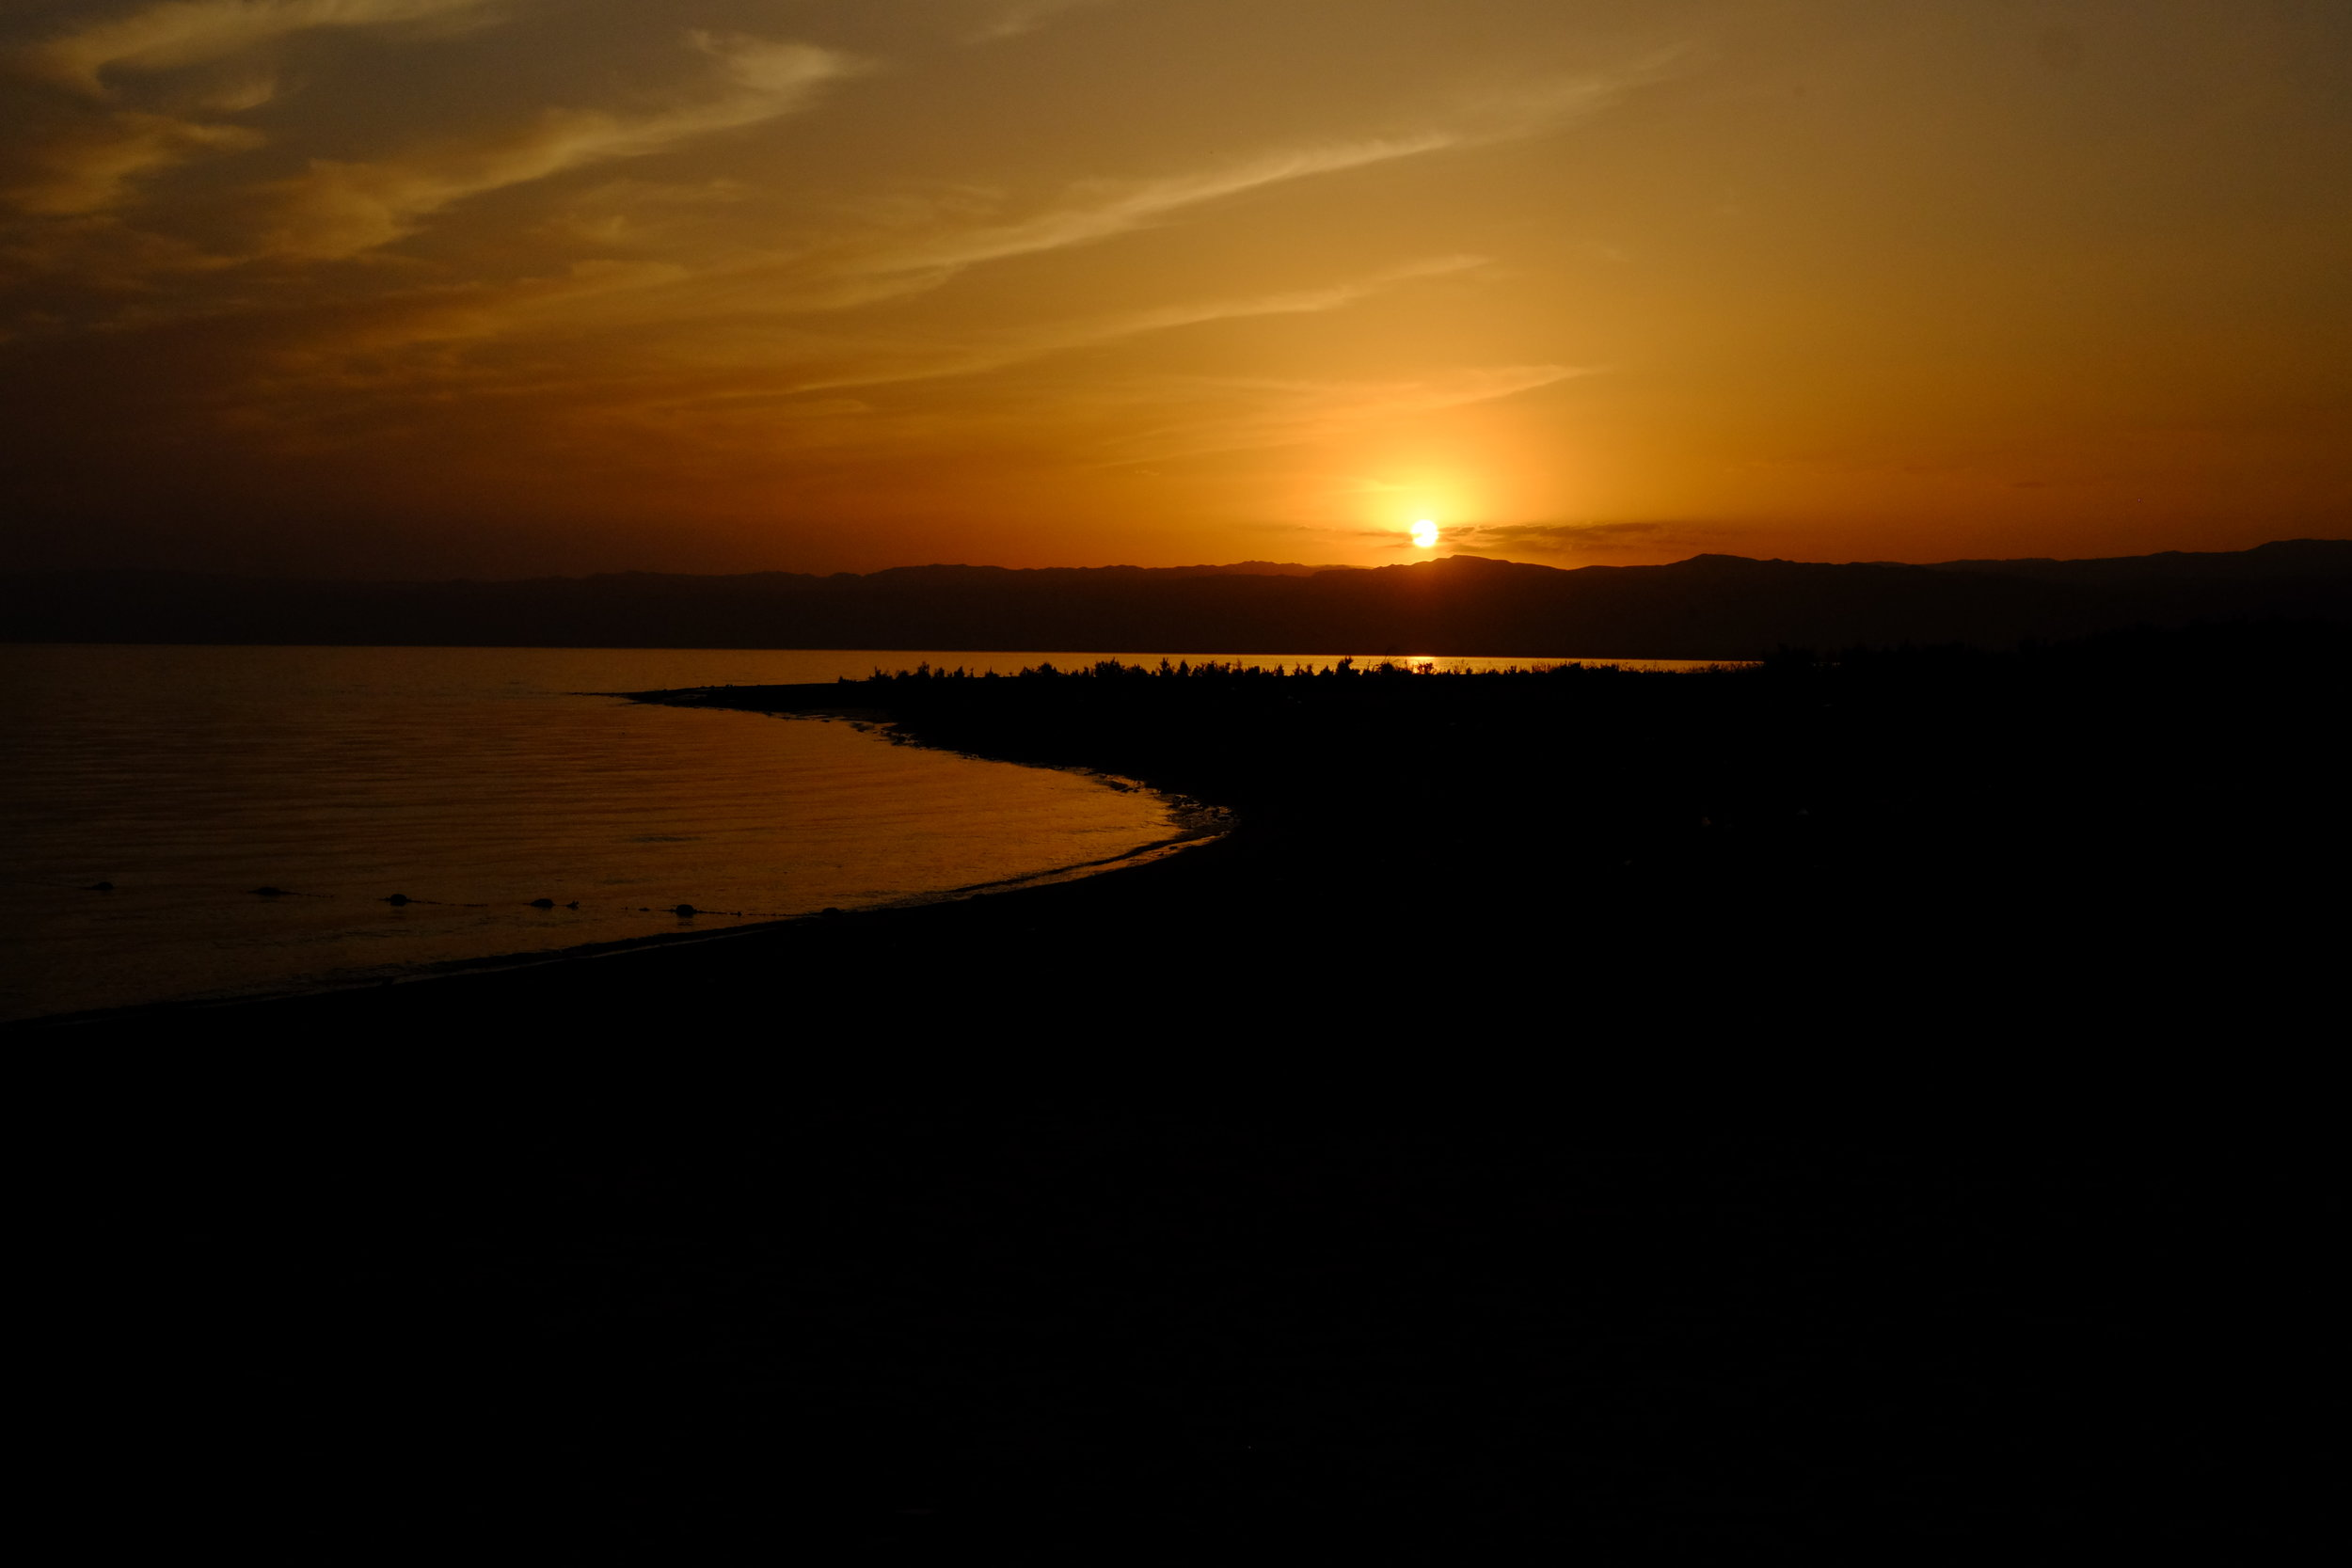 #NoFilter sunset at the Dead Sea